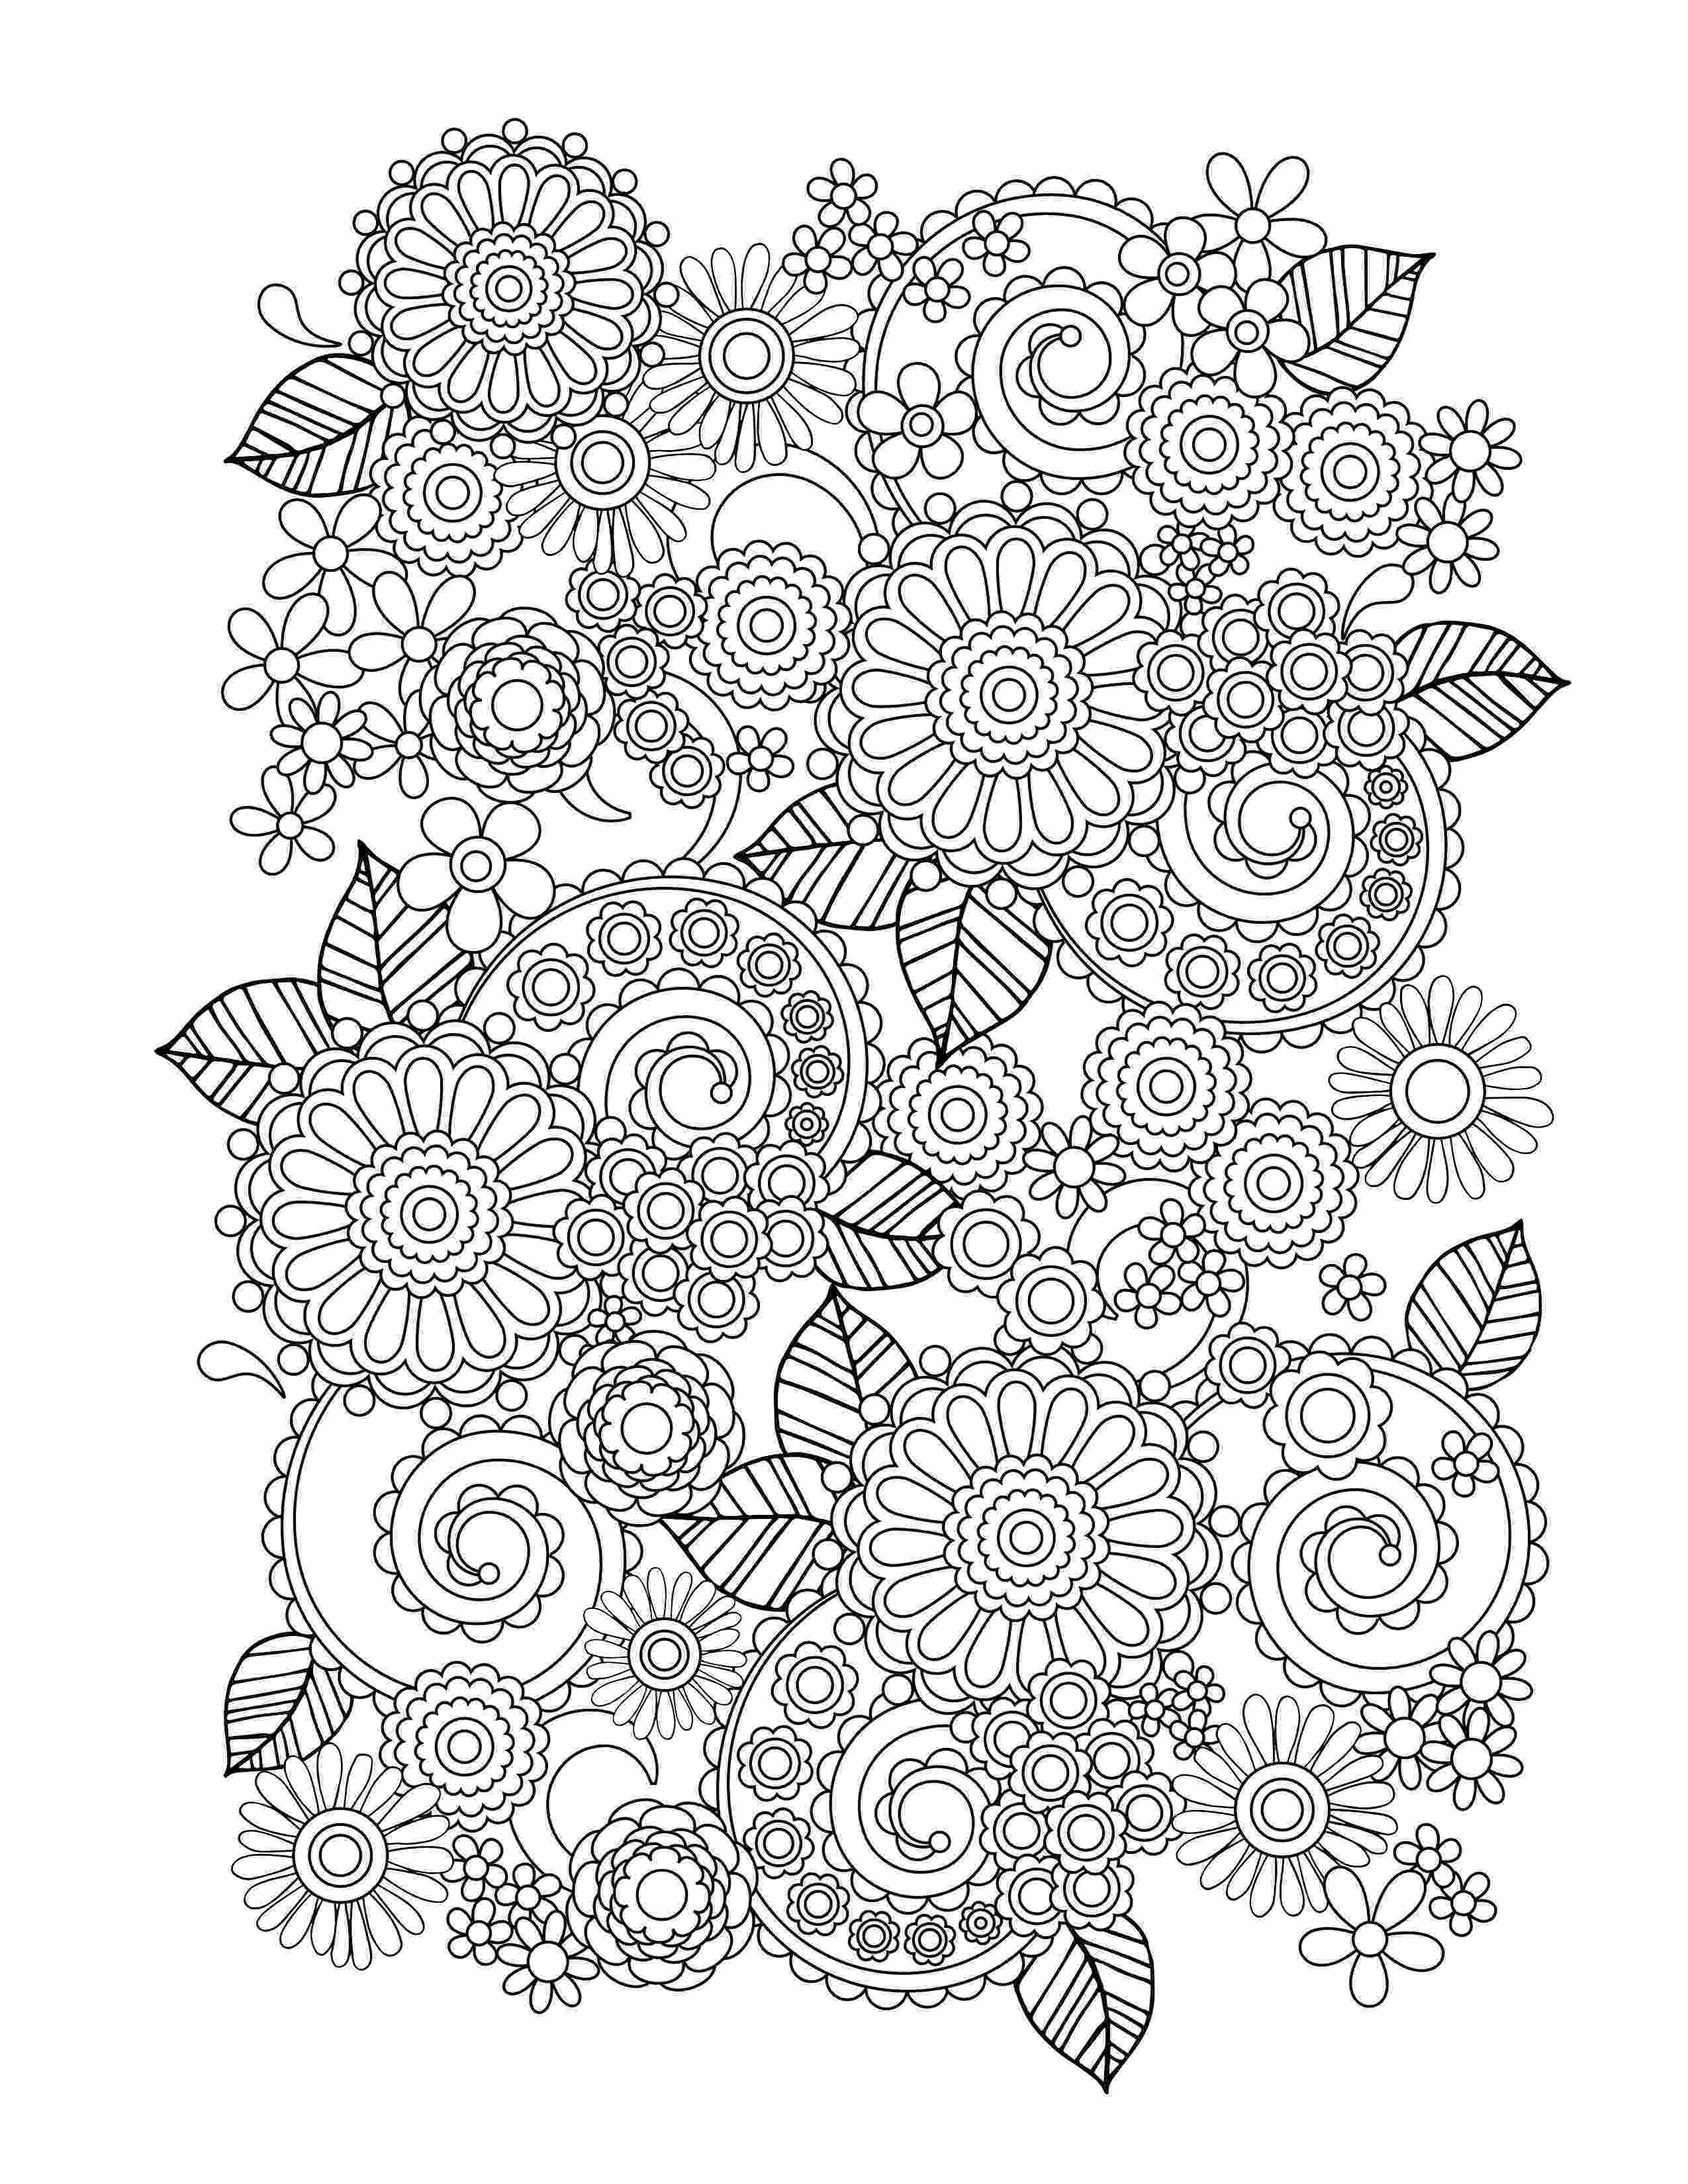 printable flower coloring pages for adults free coloring pages for adults printable adult coloring flower adults coloring printable pages for